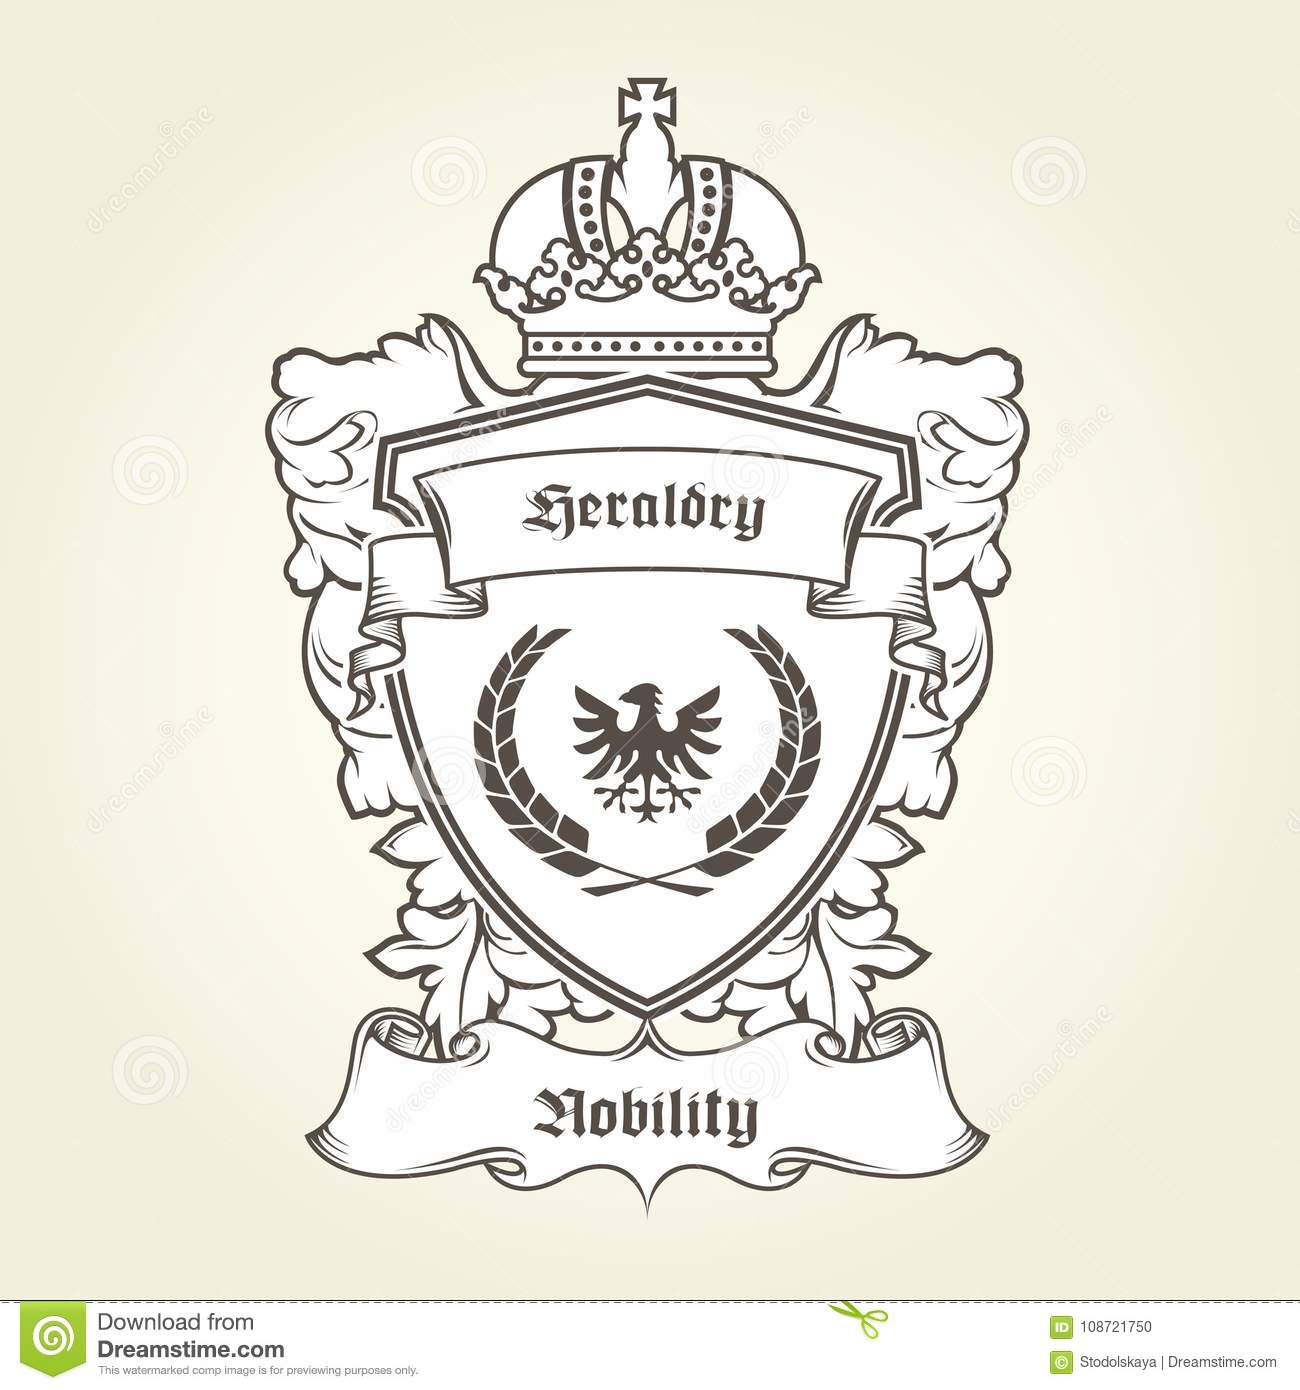 coat of arms template with heraldic eagle shield and crown stock